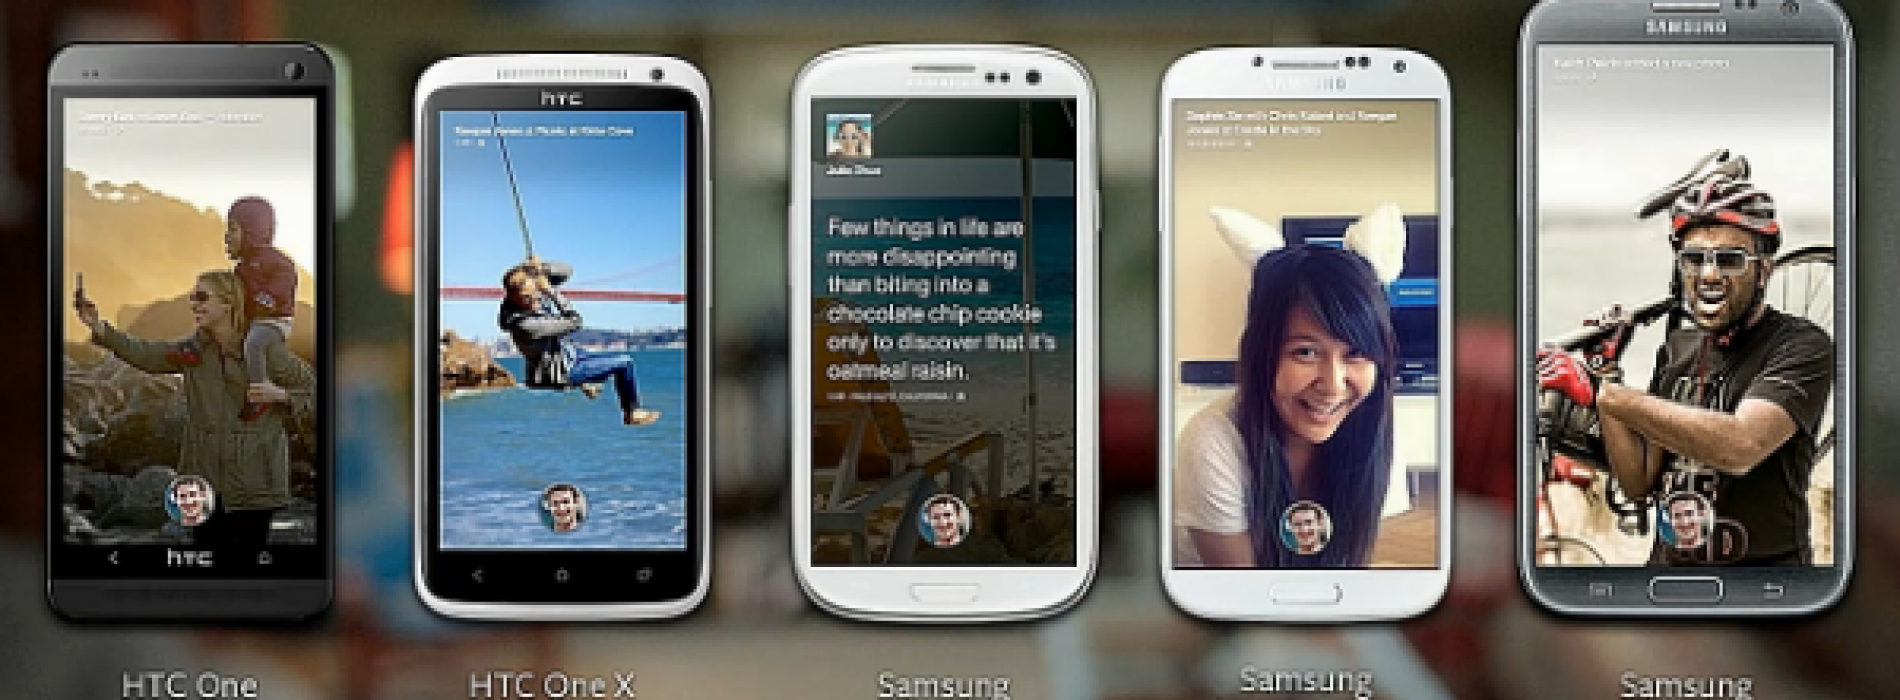 Facebook Home will be available for select Android devices starting April 12